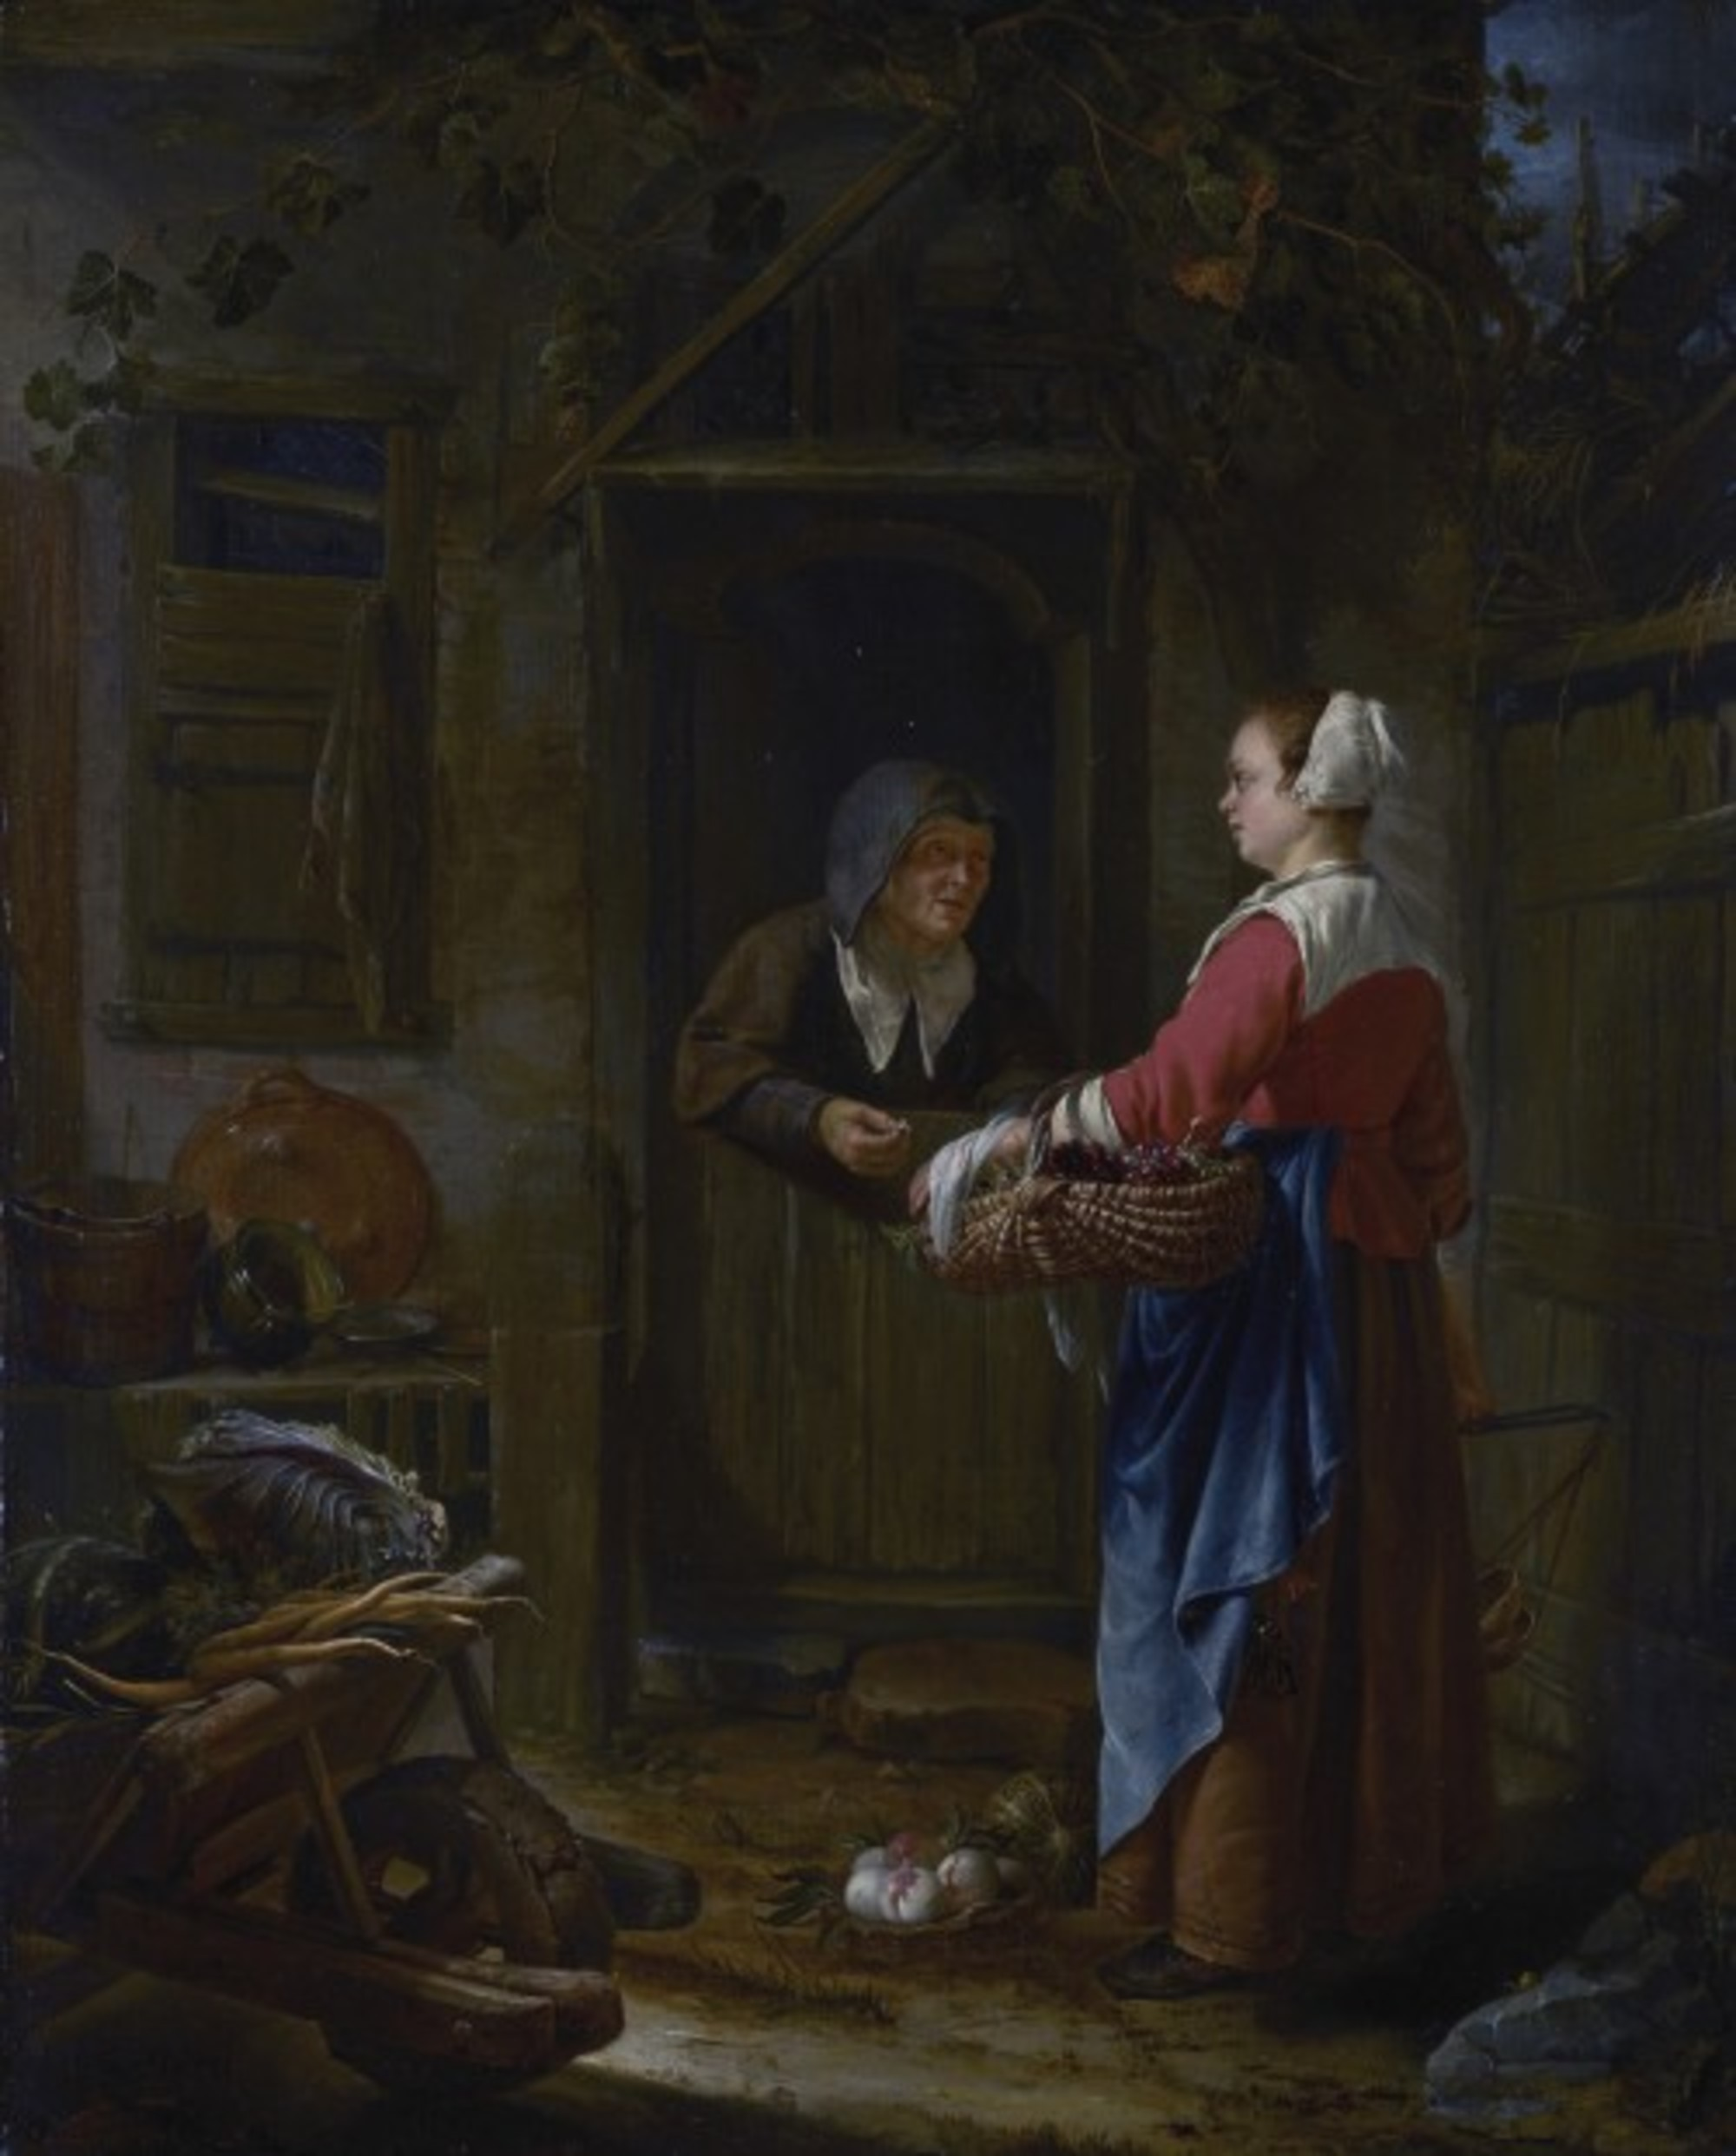 A-Girl-selling-Grapes-to-an-old-Woman-by-Frans-van-Mieris-de-Oude.jpg